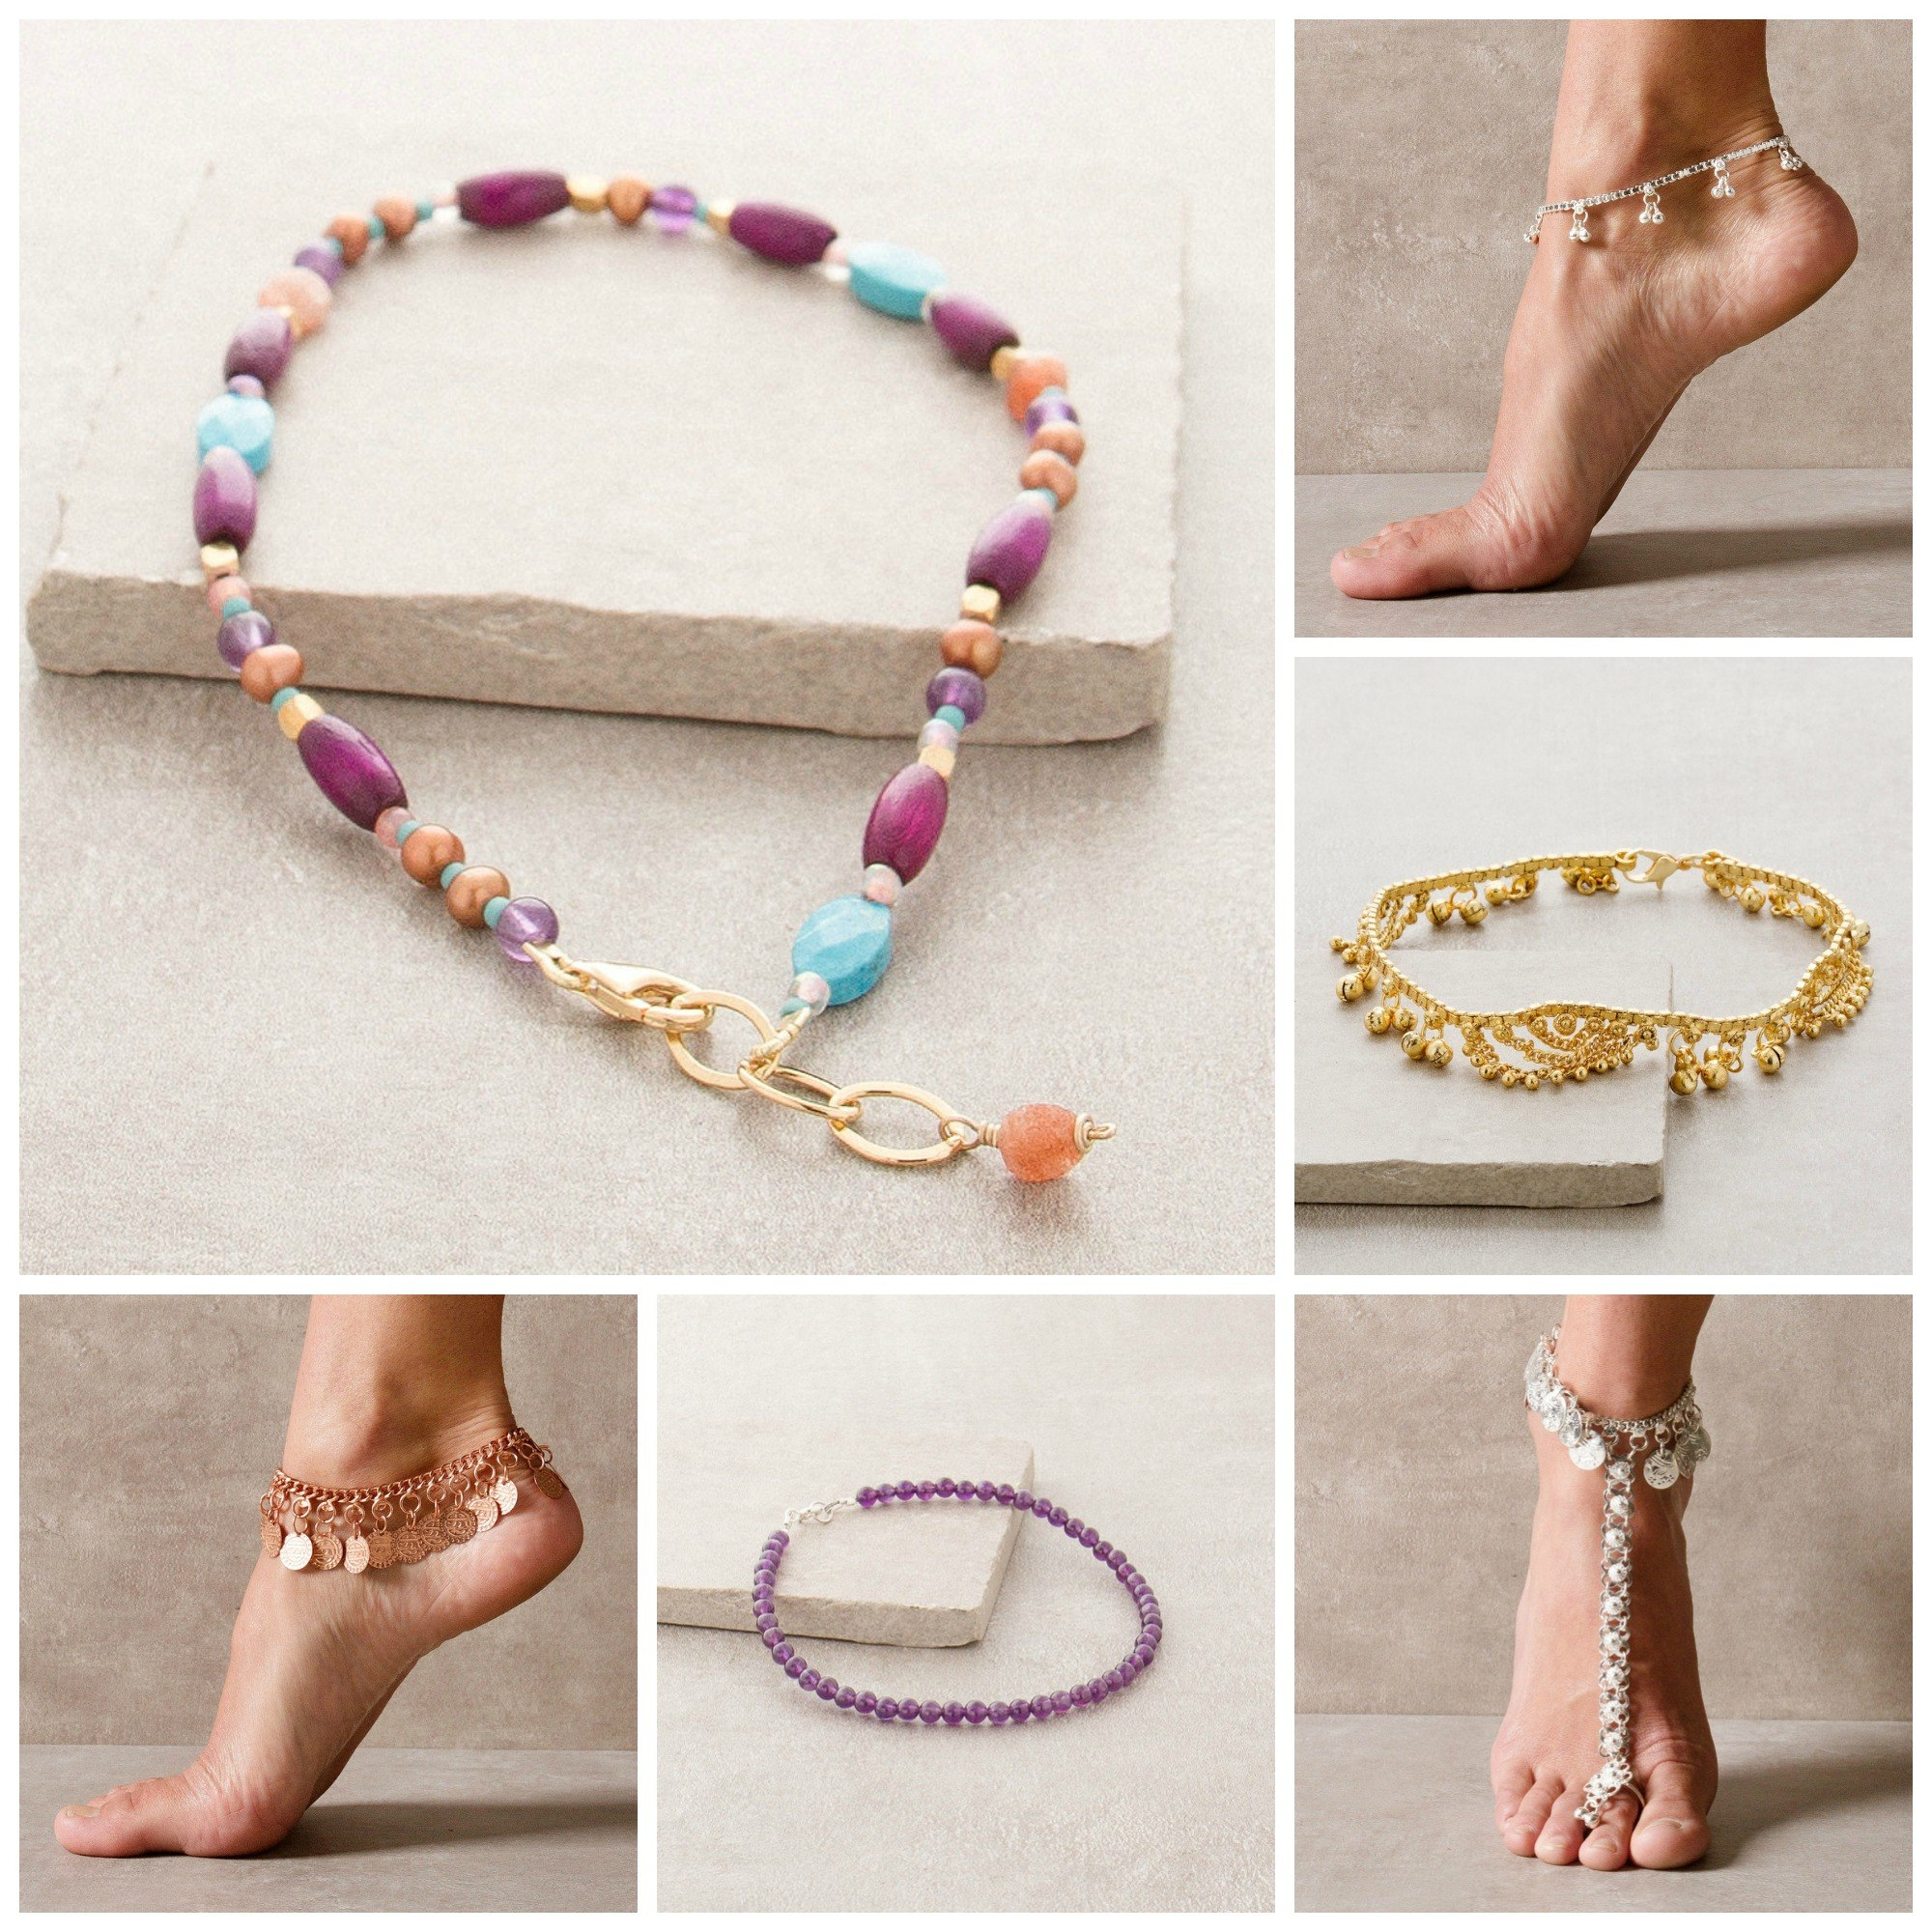 to anklet wikihow titled image with anklets make bracelets pictures cool step how ankle